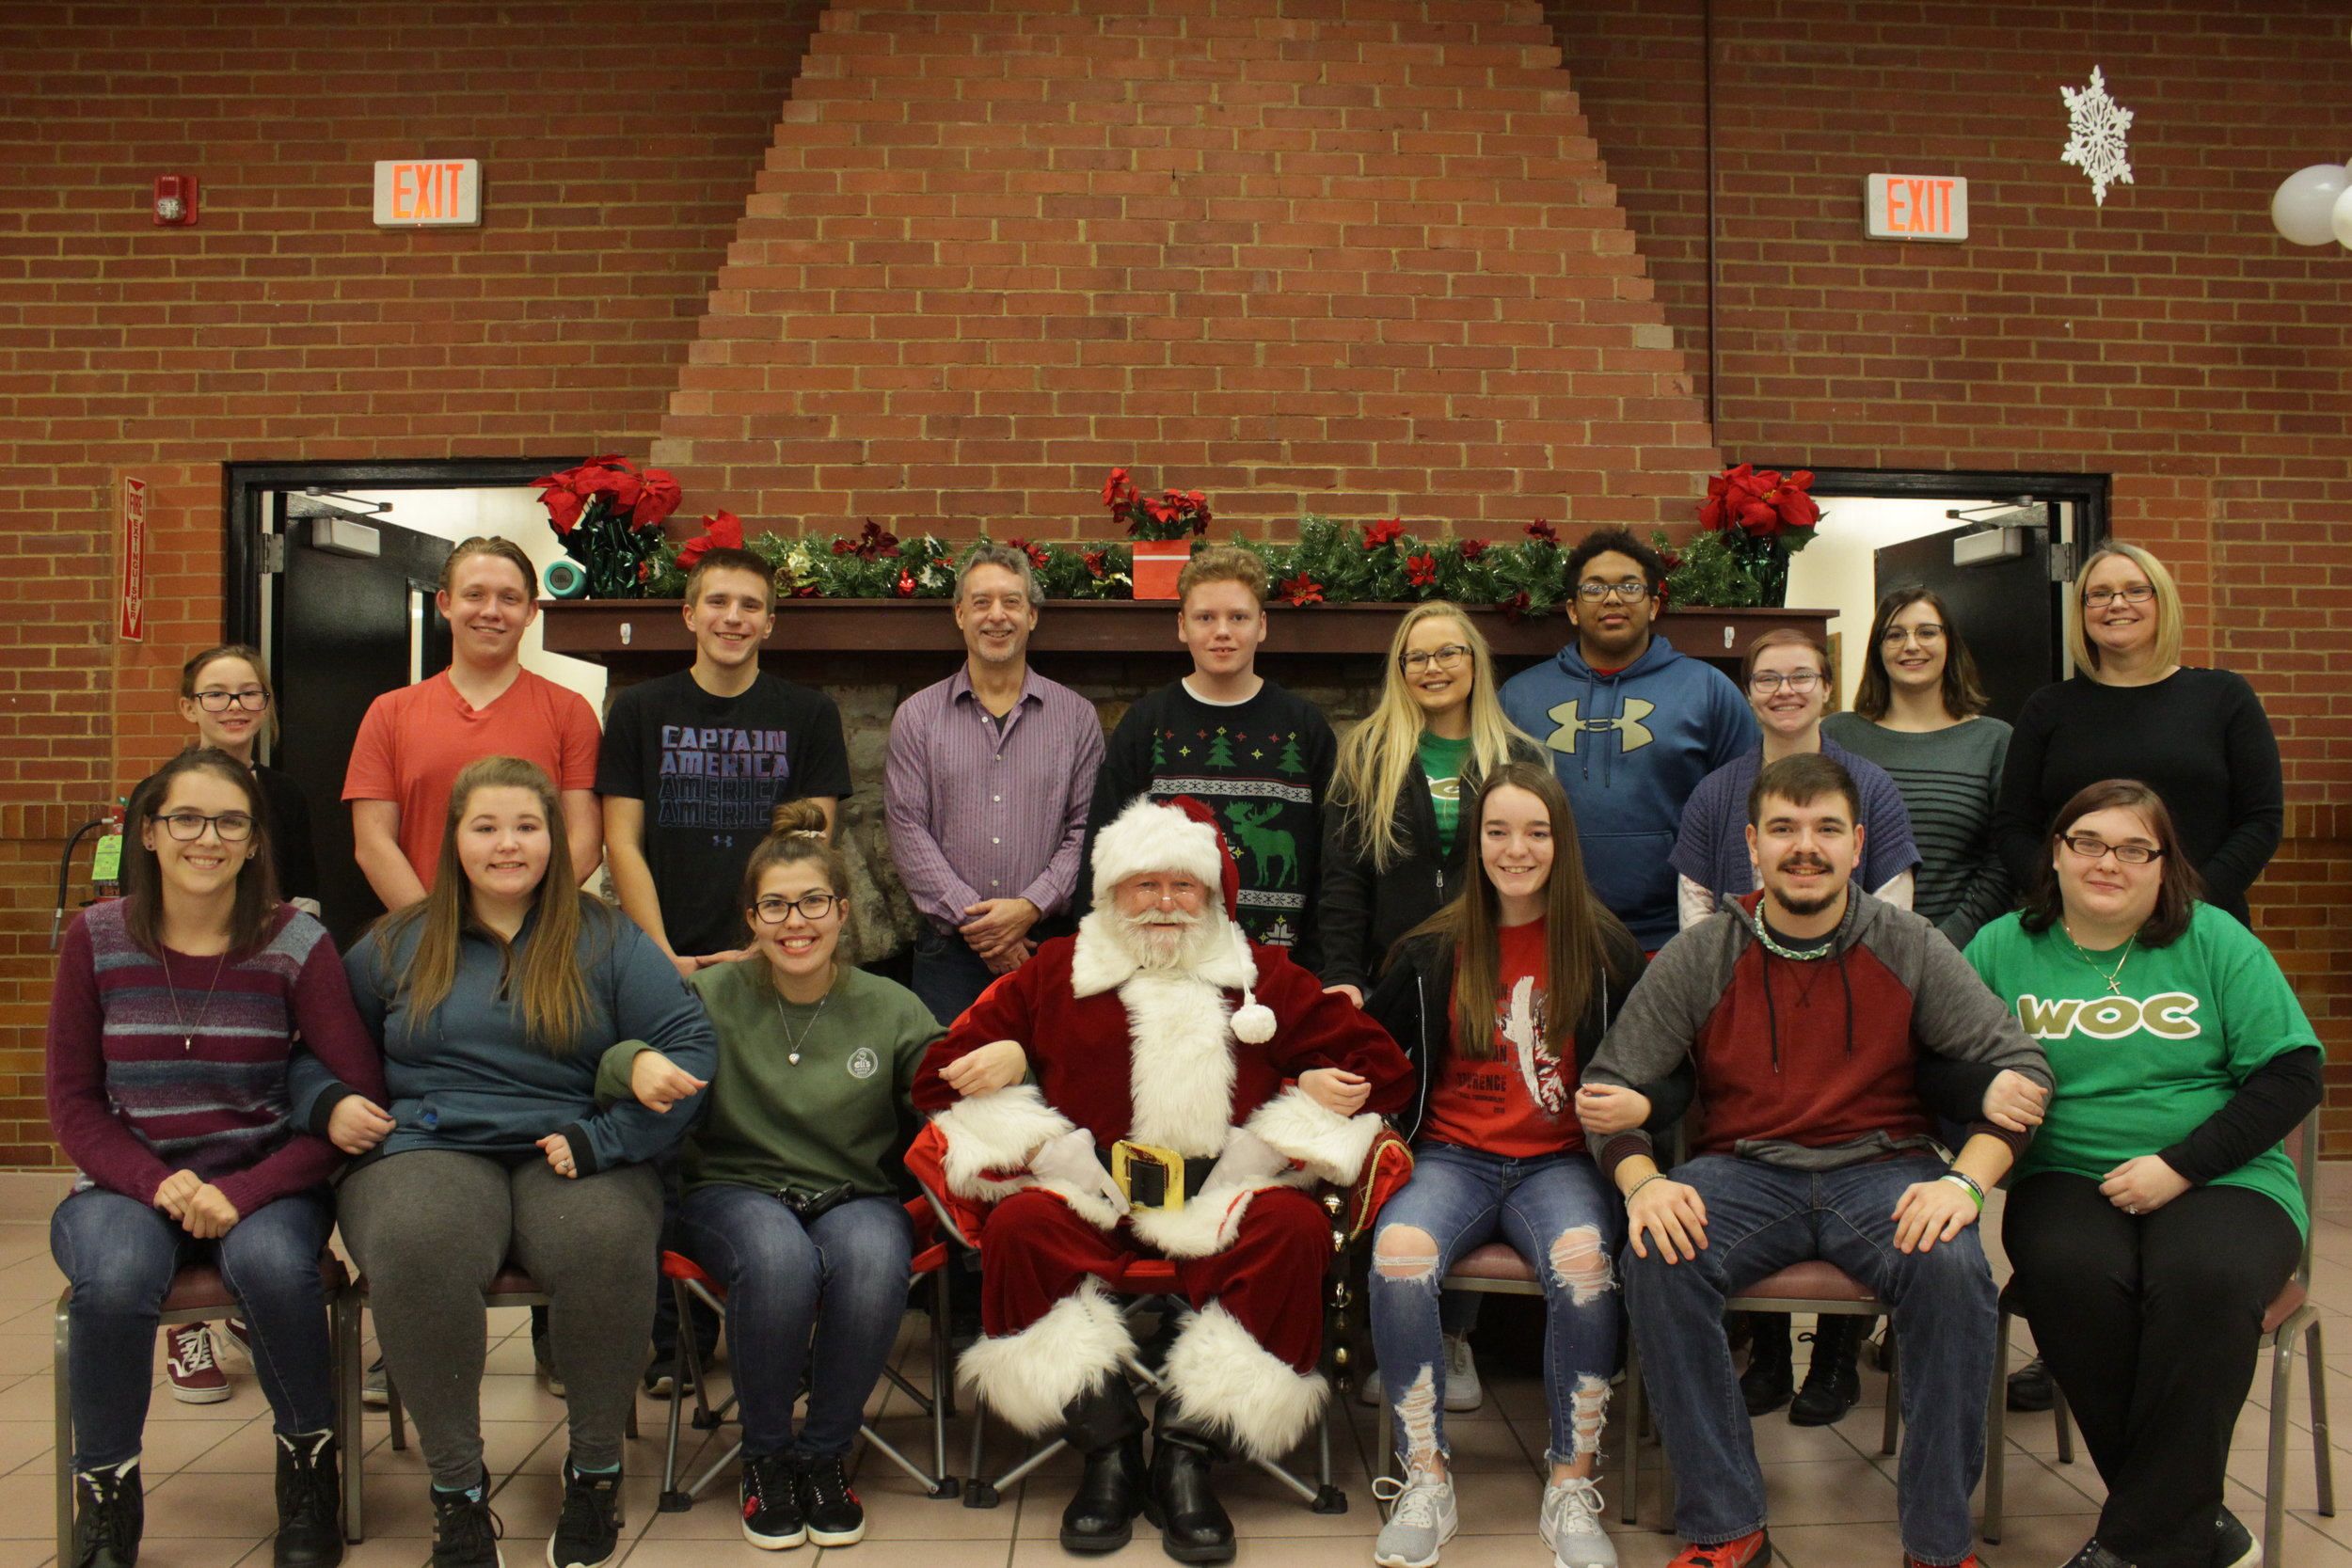 Volunteers come together for a picture after helping out during the 2018 annual Christmas party.